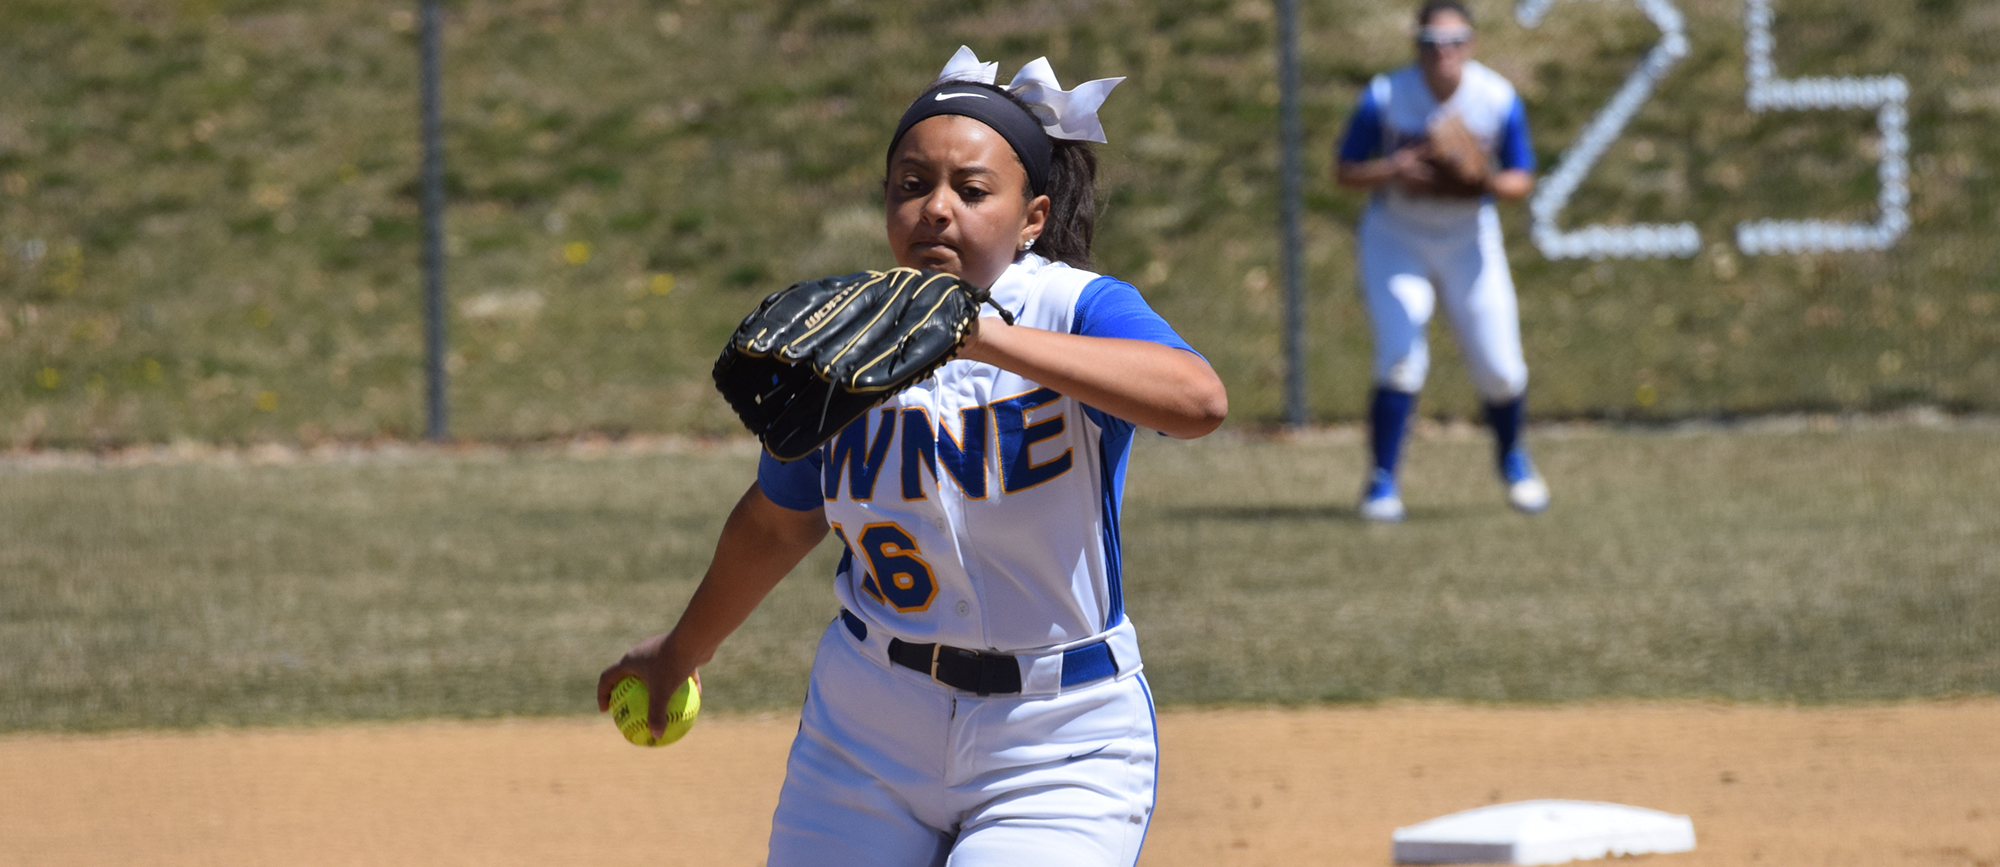 Sophomore Paige Uliase struck out seven batters and allowed one run over eight innings as Western New England rallied to earn a pivotal 2-1 victory over Endicott in the CCC Tournament on Friday in Beverly. (Photo by Rachael Margossian)